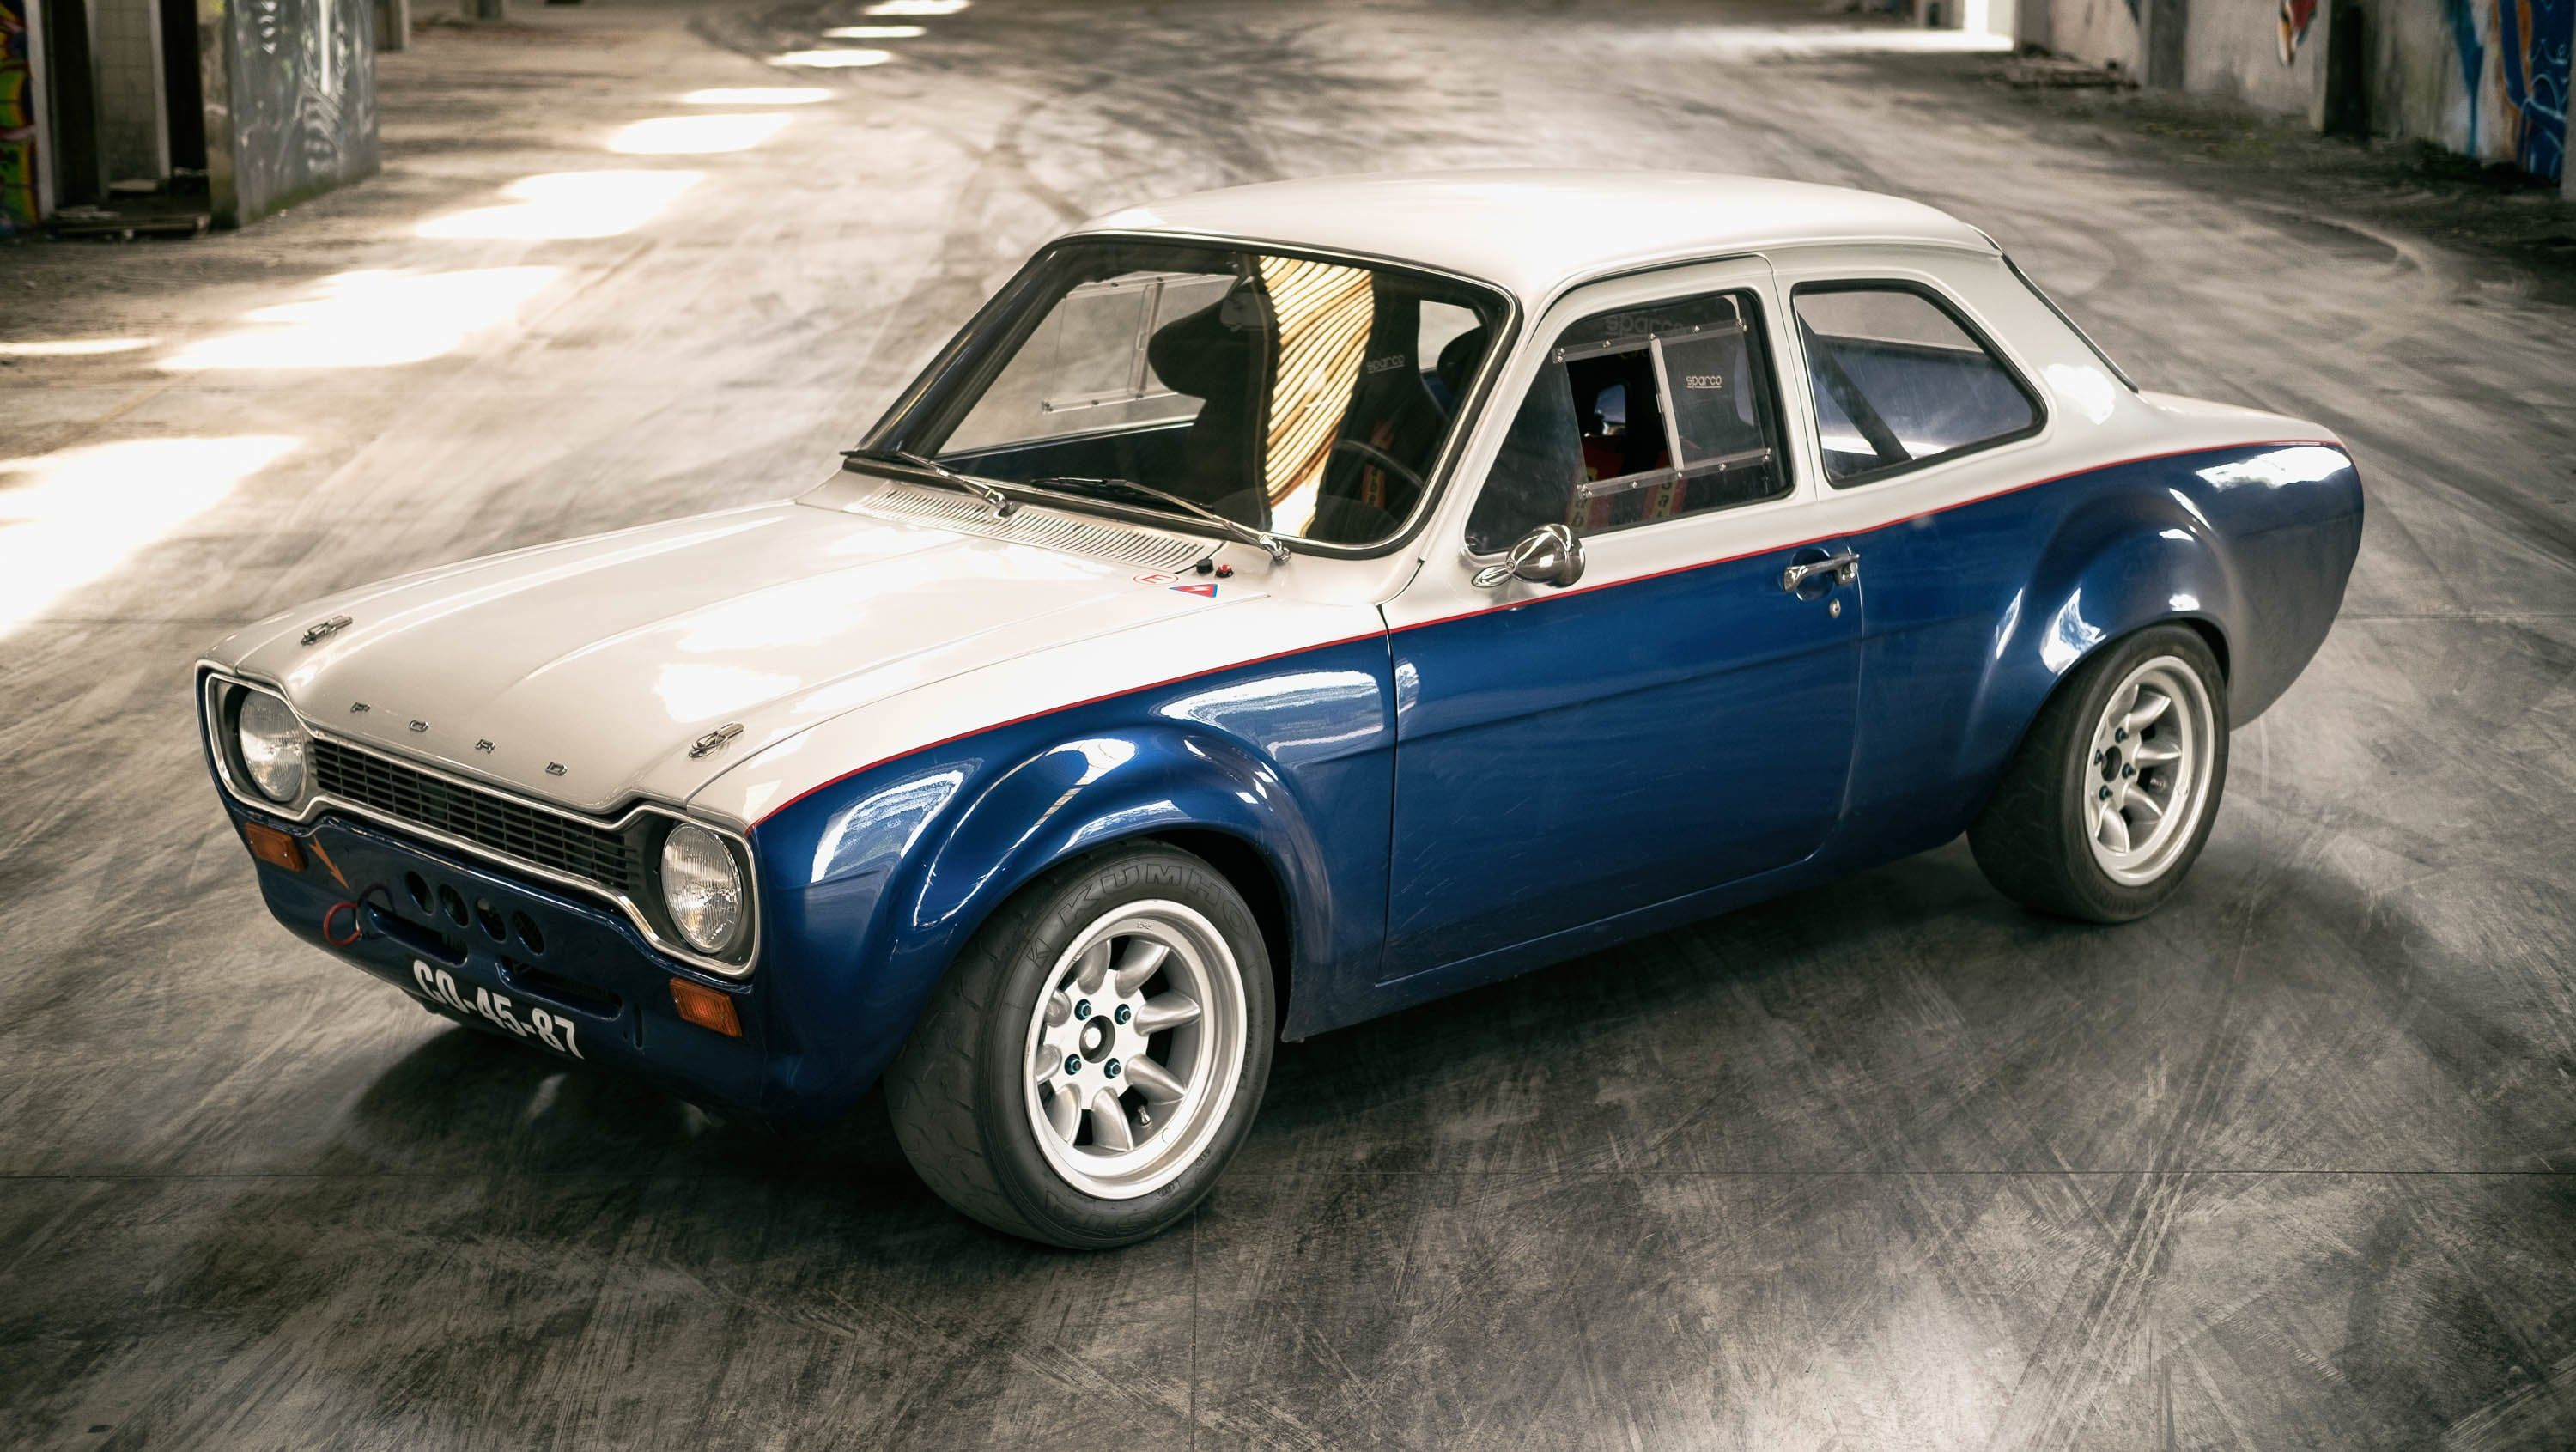 Donuts - The way to sell a Ford Escort MK1 | Ford escort, Mk1 and Ford